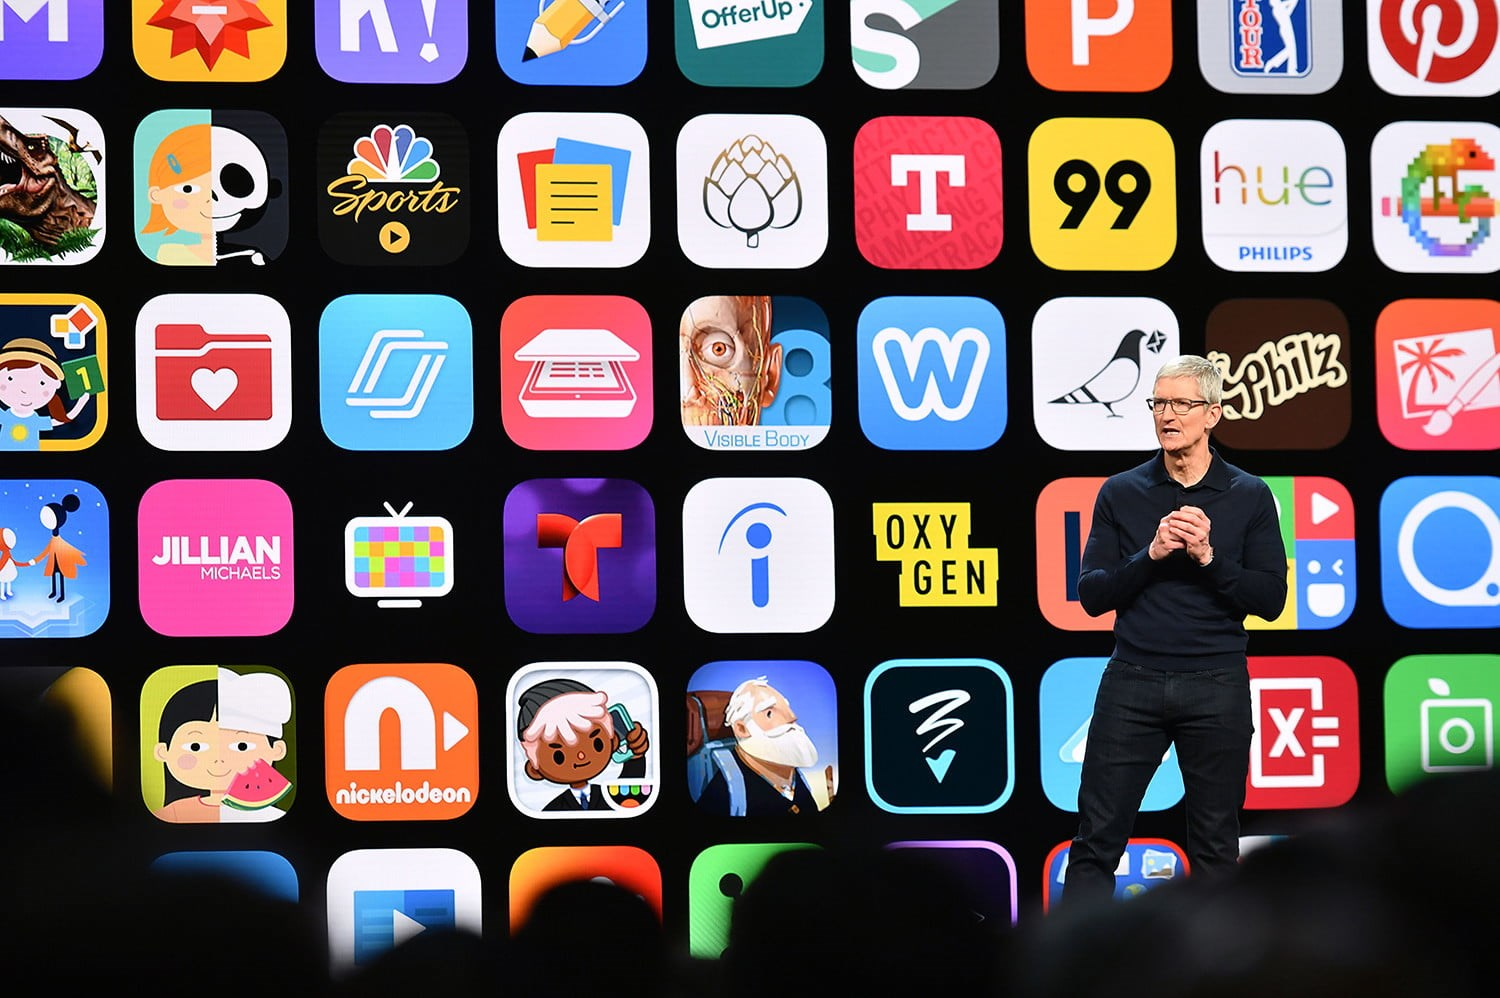 Everything Apple announced at WWDC, from iOS 12 to MacOS